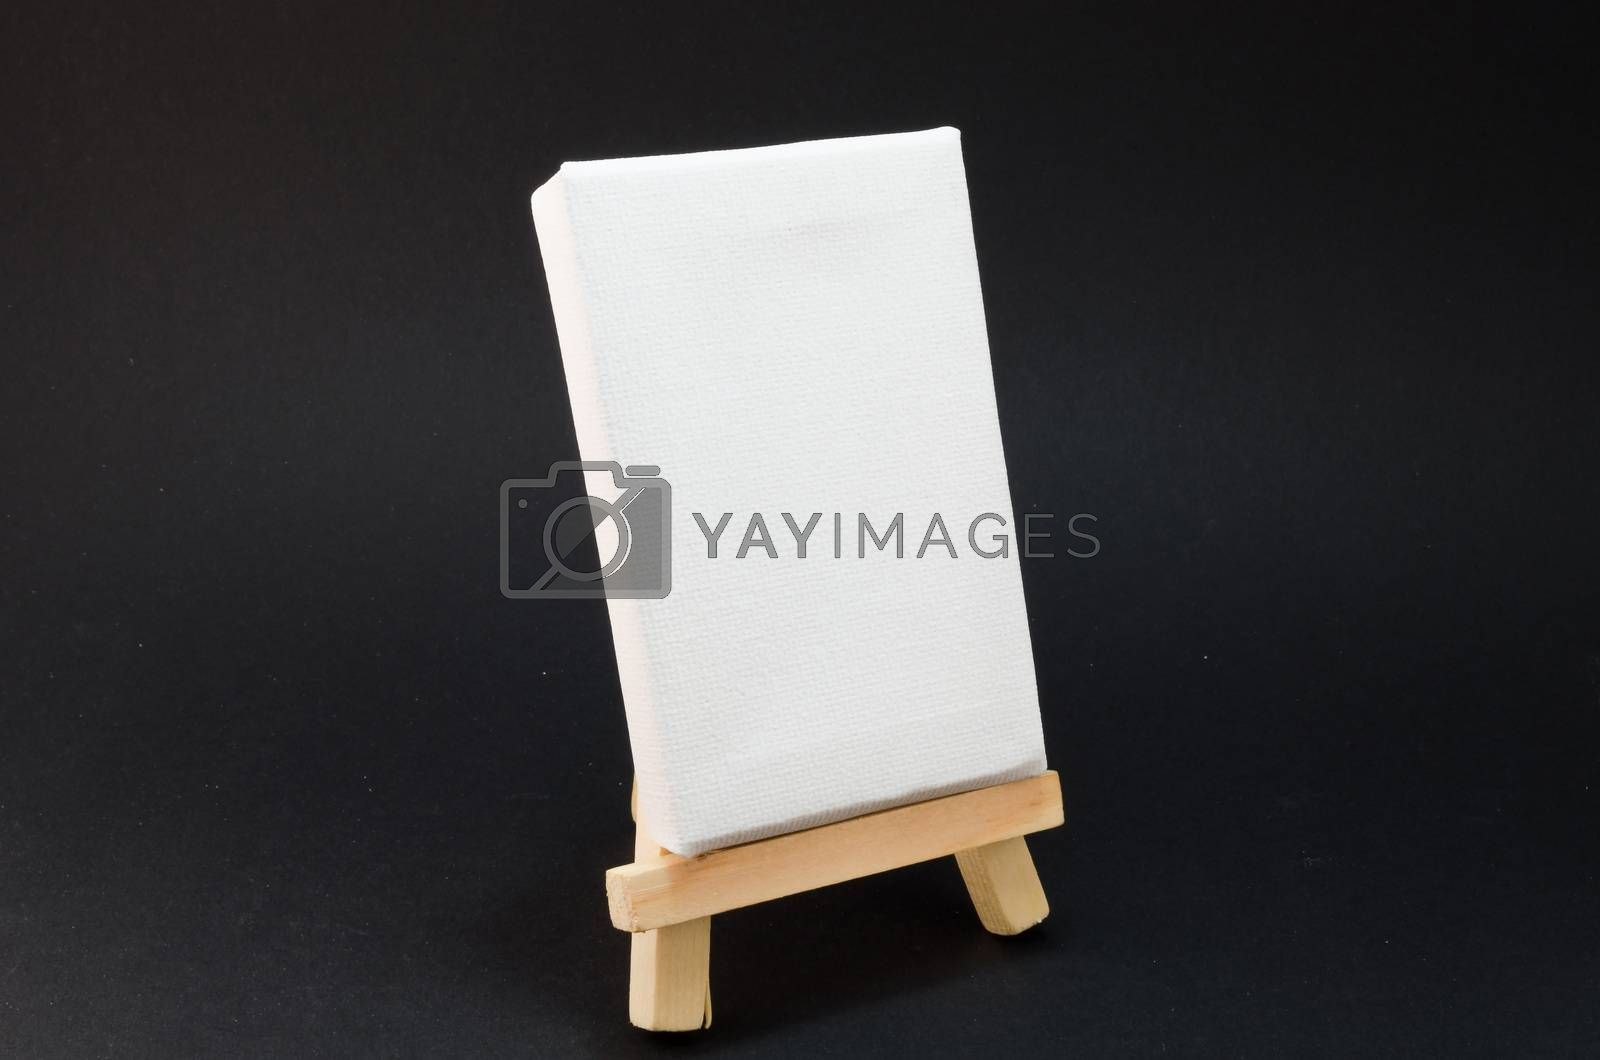 Miniature artist easel, isolated against a black background.